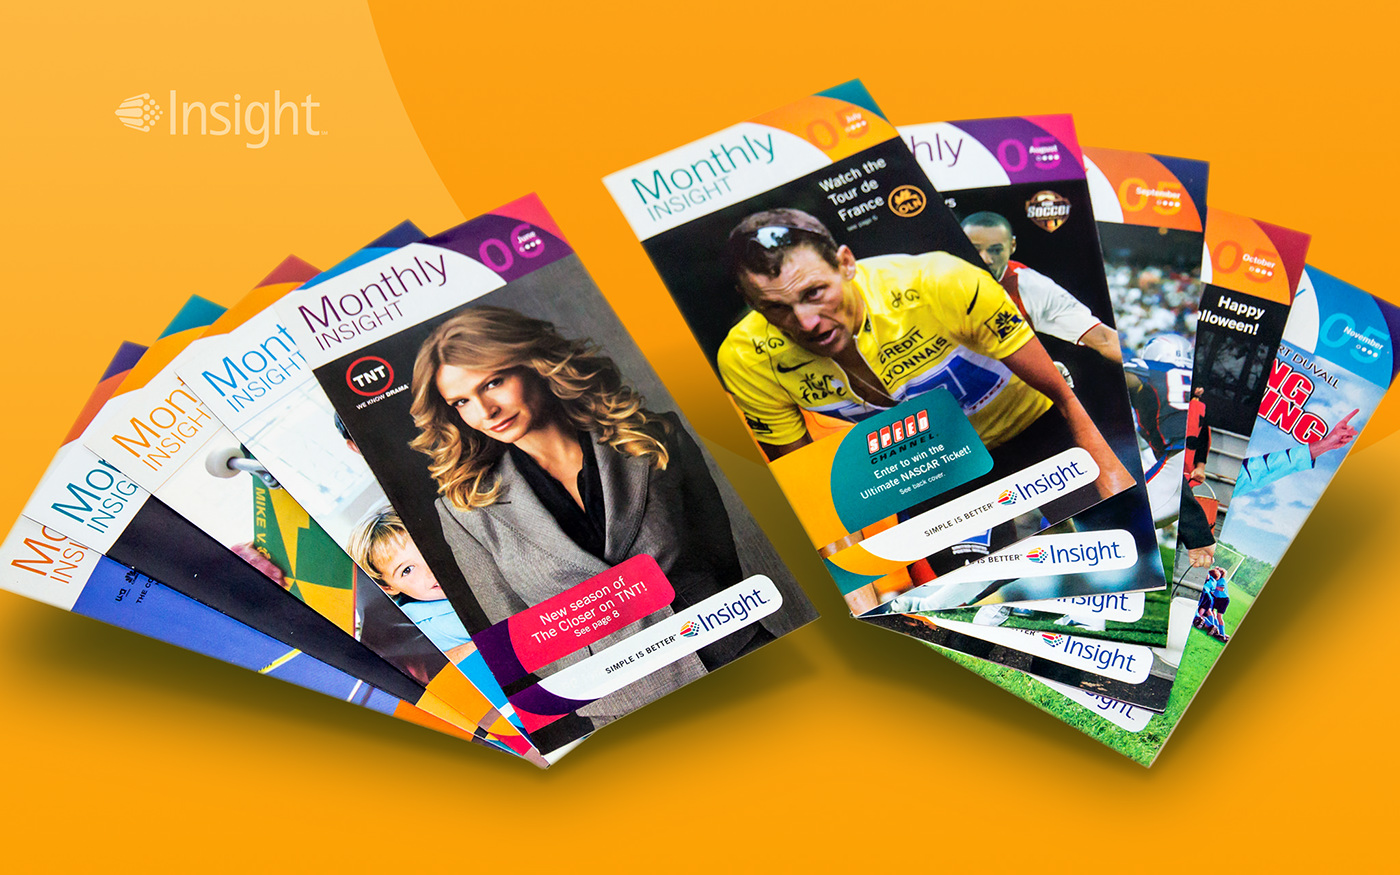 Insight communications digest newsletter Direct mail monthly Cable mso hdtv road runner dvr OnDemand